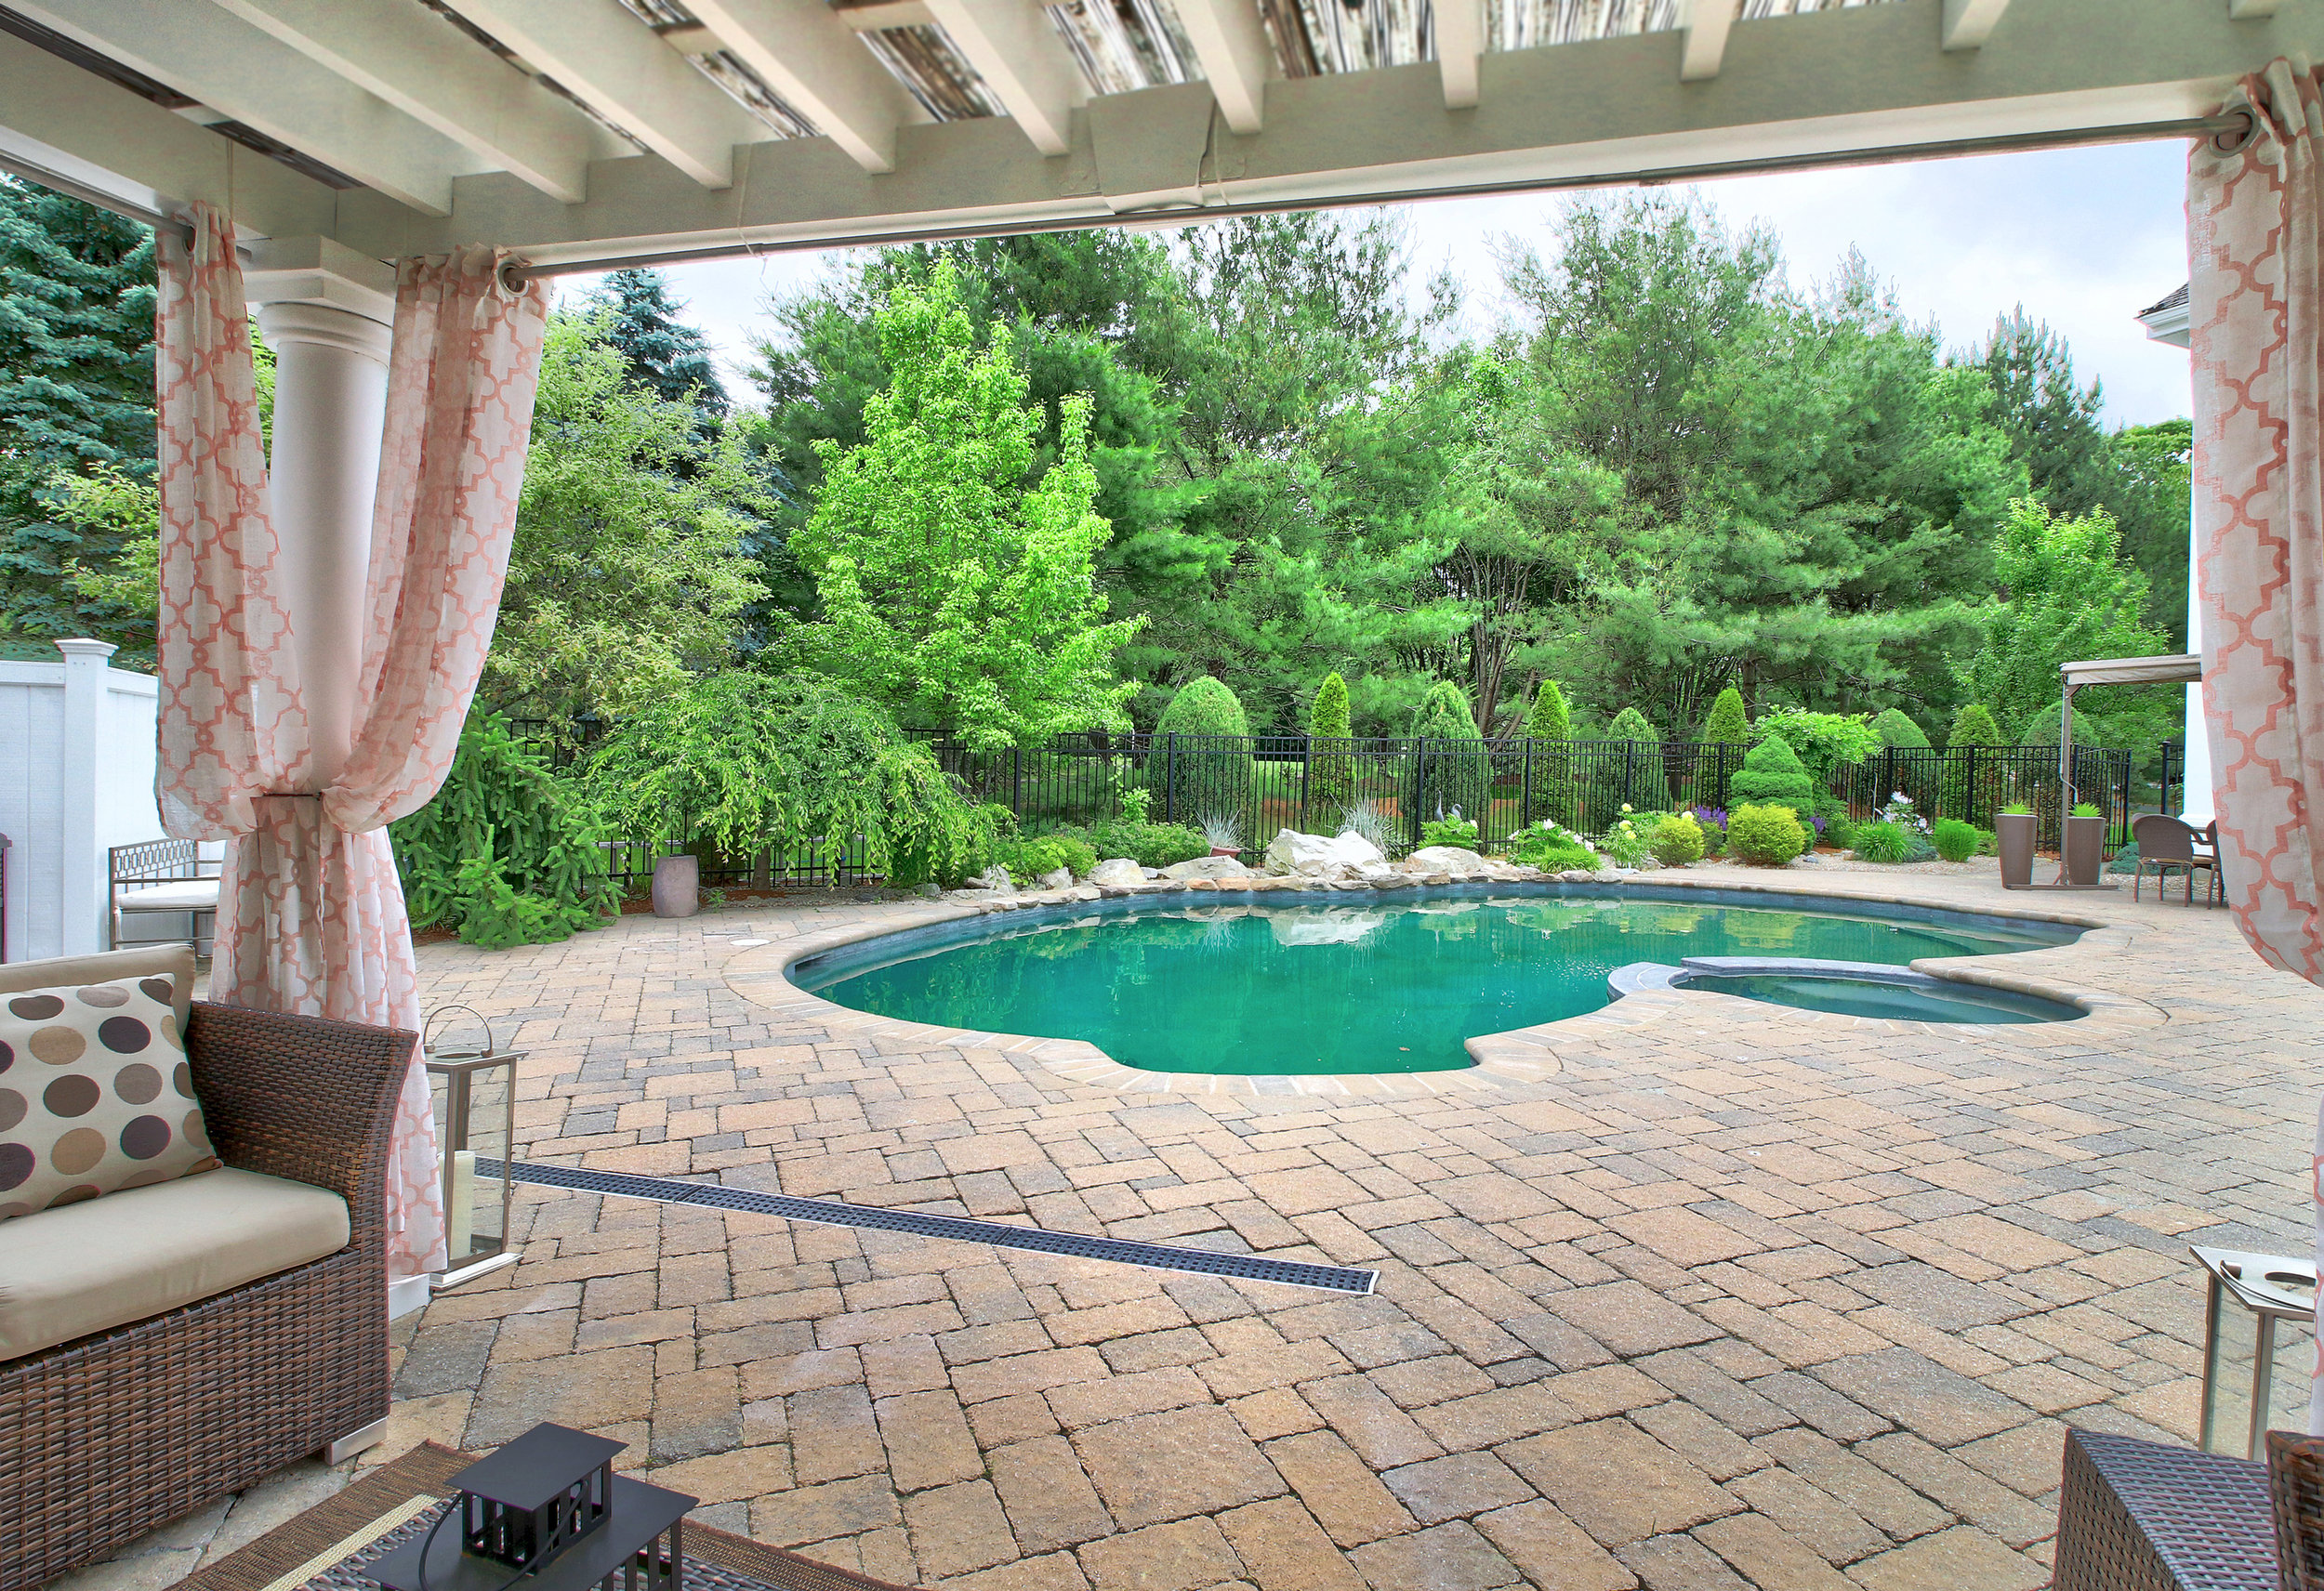 *Pool view from patio copy.jpg